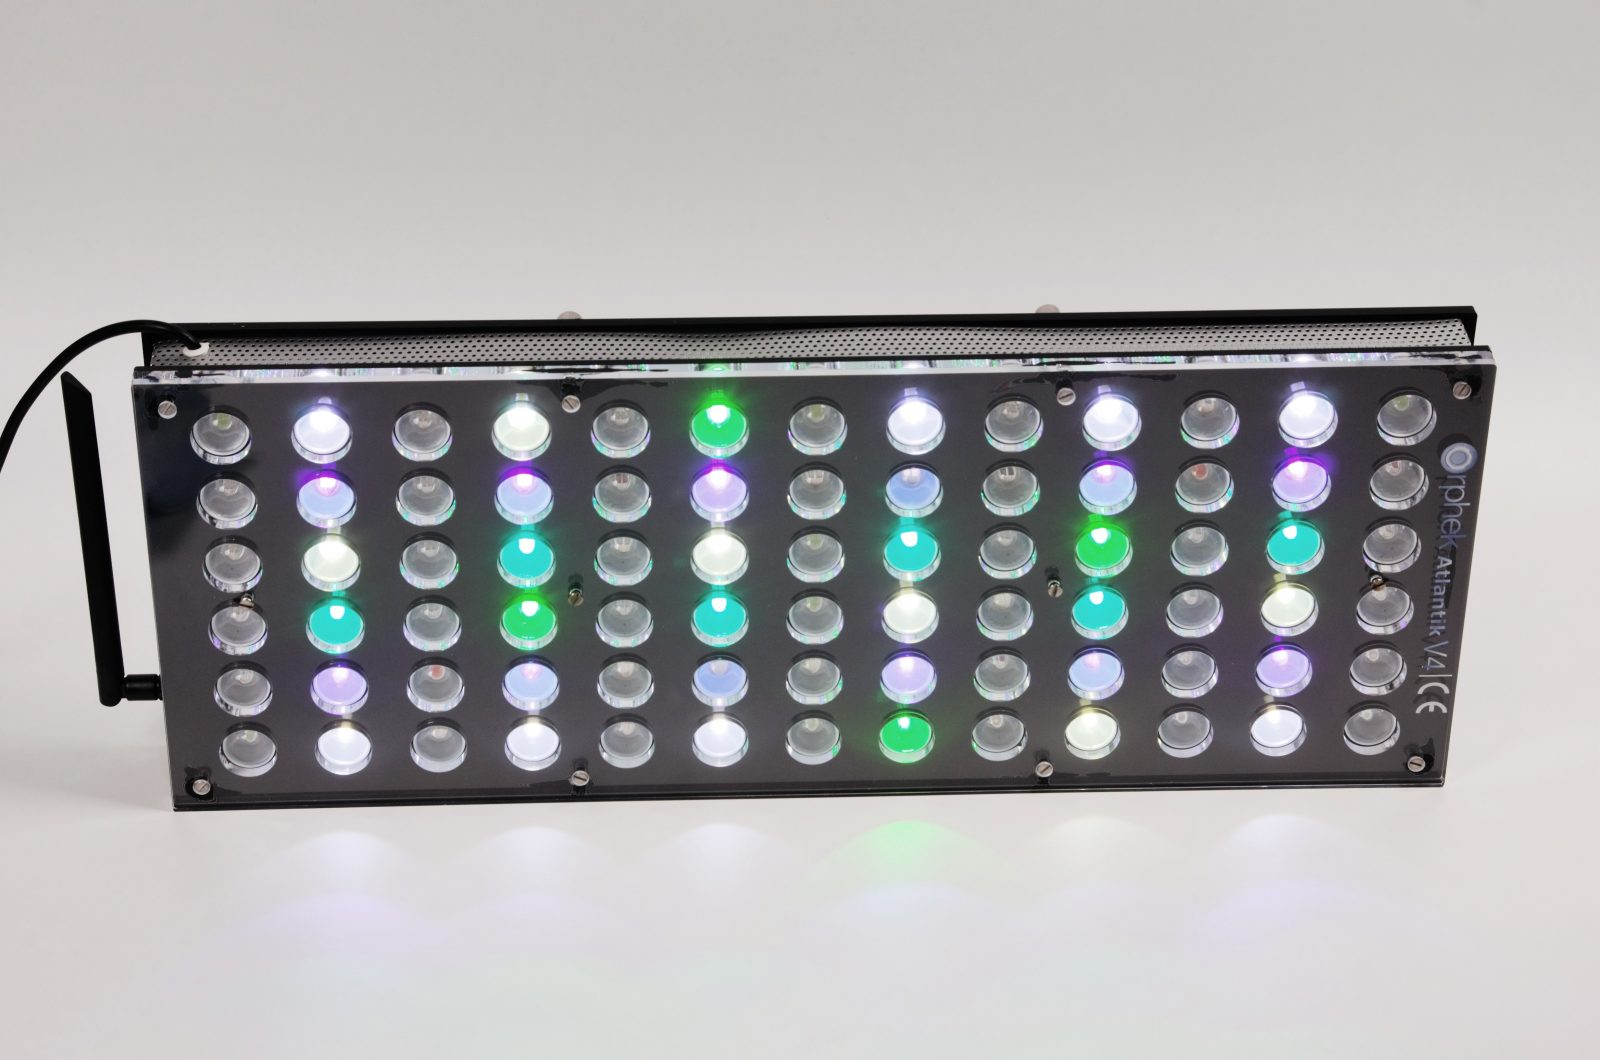 Orphek-Aquarium-LED-Lighting-Reef-Atlantik-V4-light-on-channel 1+3